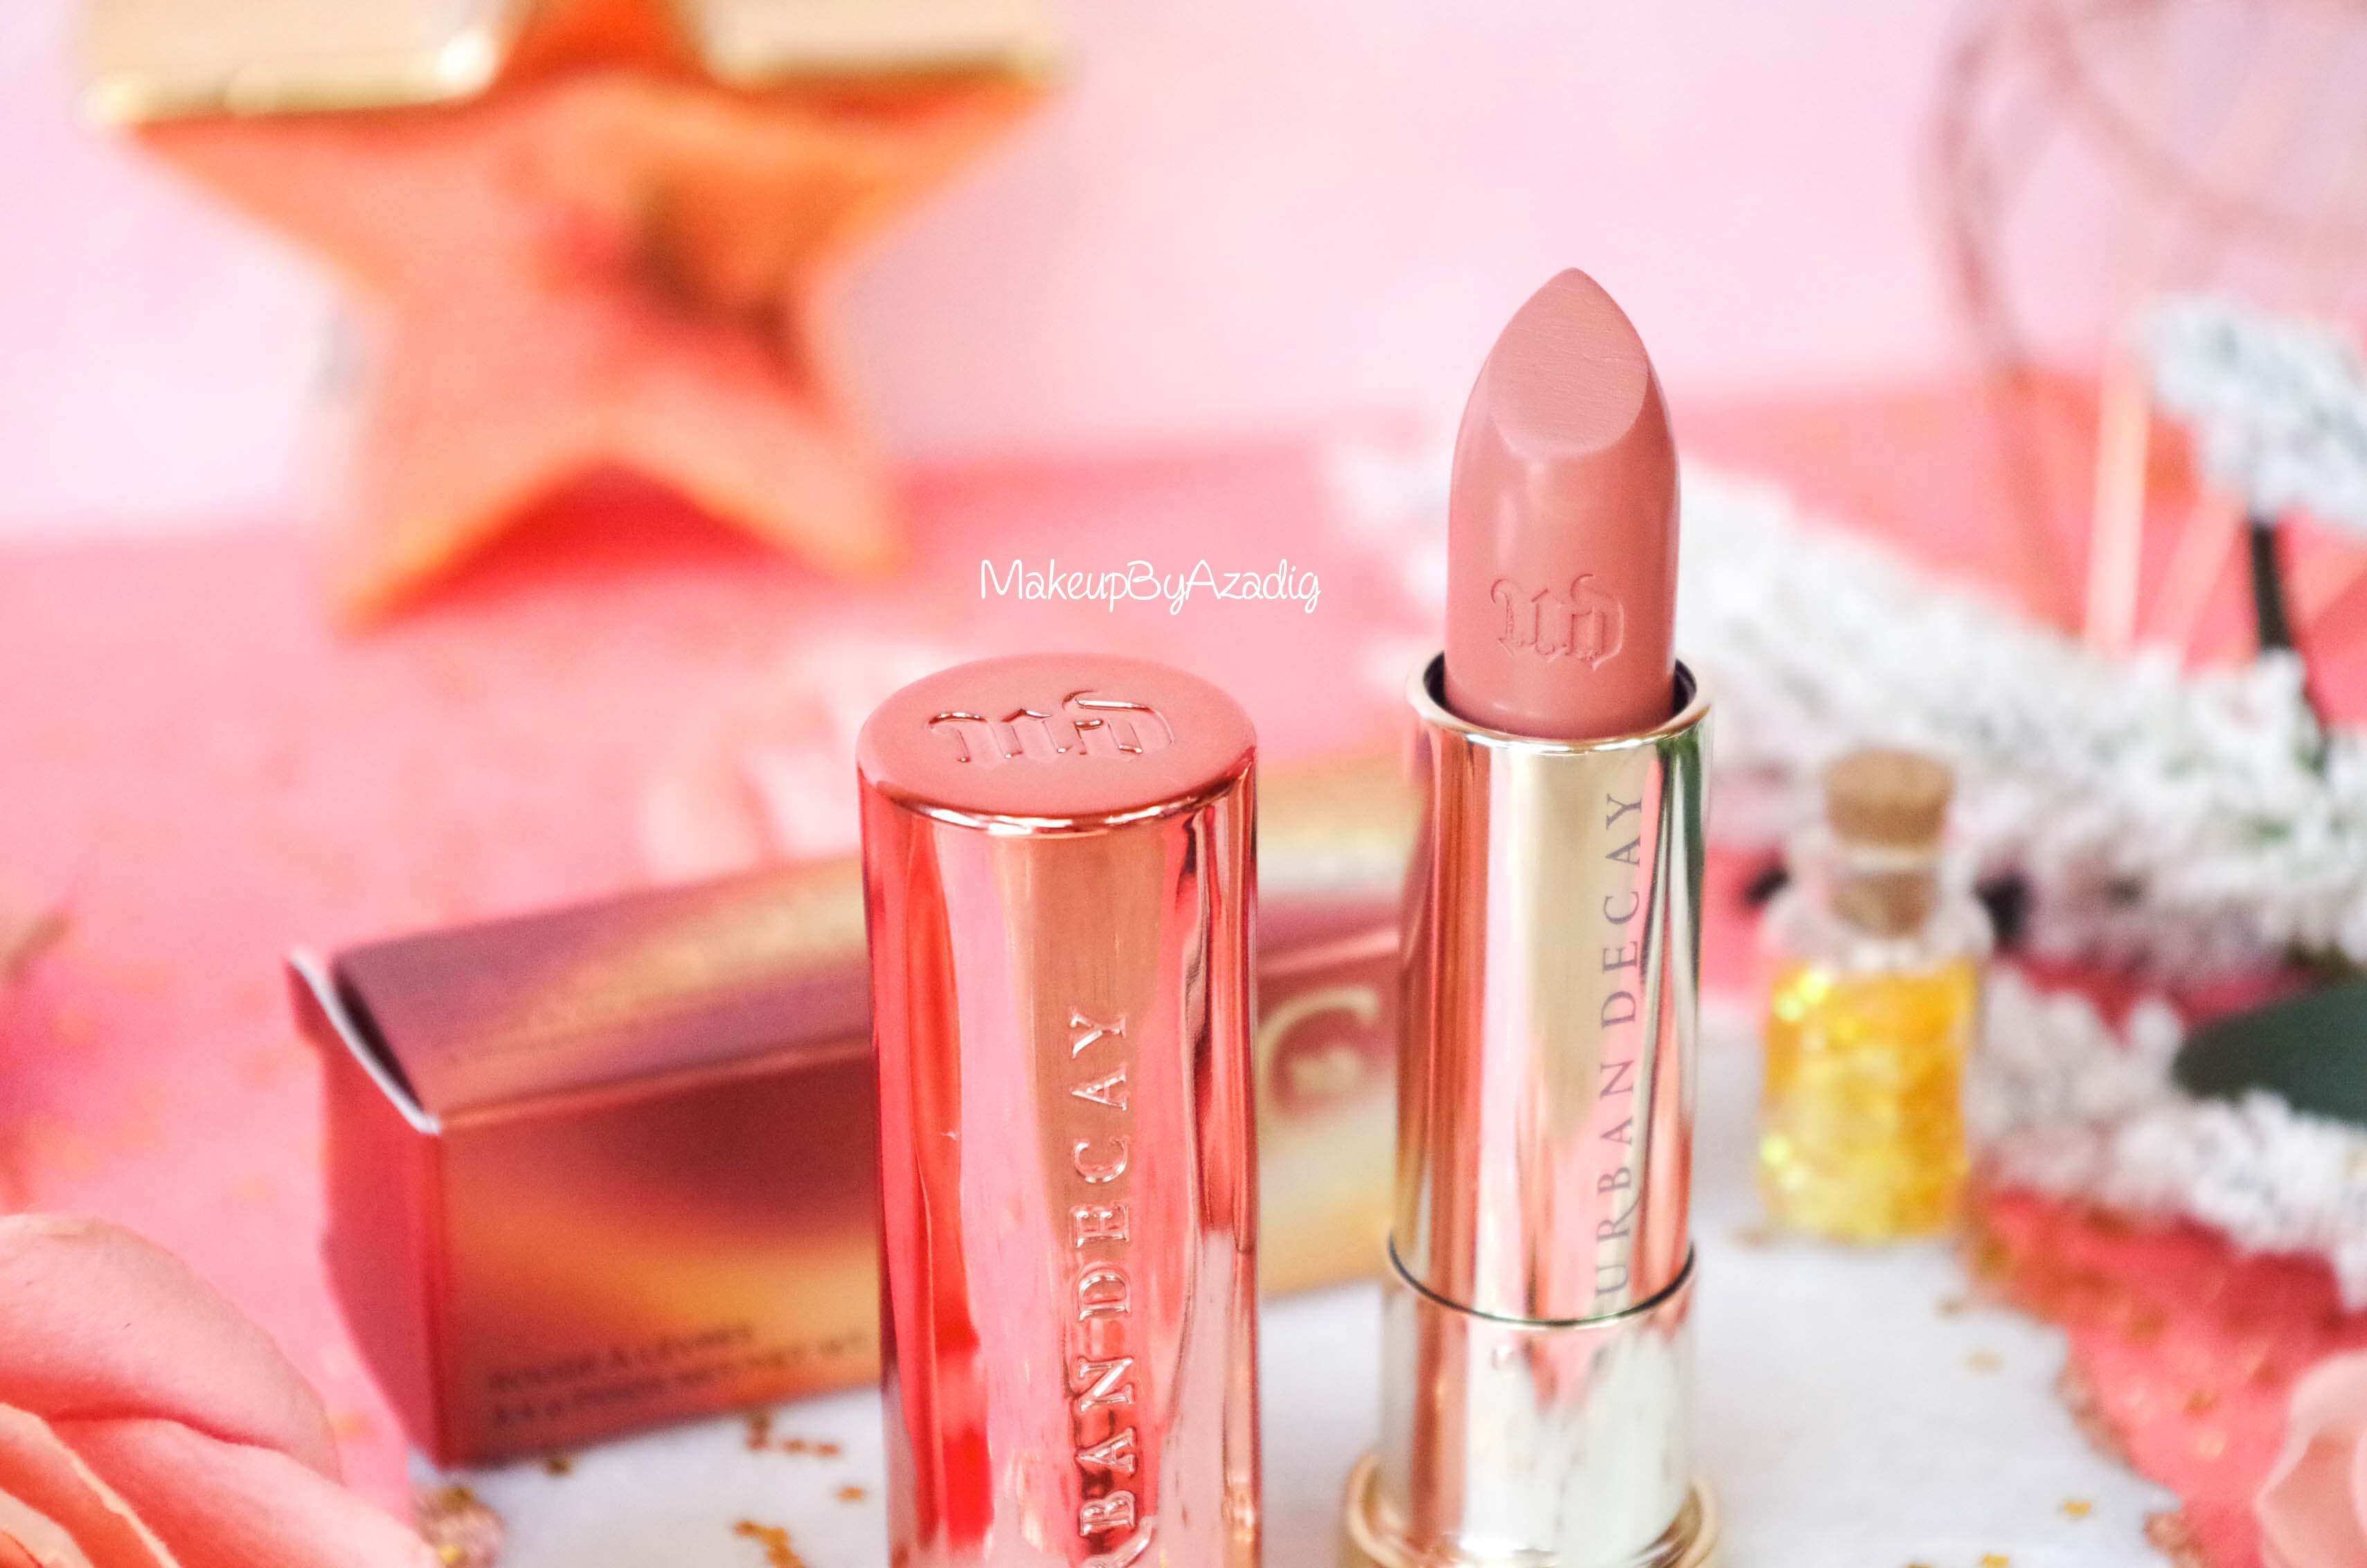 teinte-revue-review-naked-heat-vice-lipstick-fuel-heat-scorched-sephora-urban-decay-makeupbyazadig-prix-avis-troyes